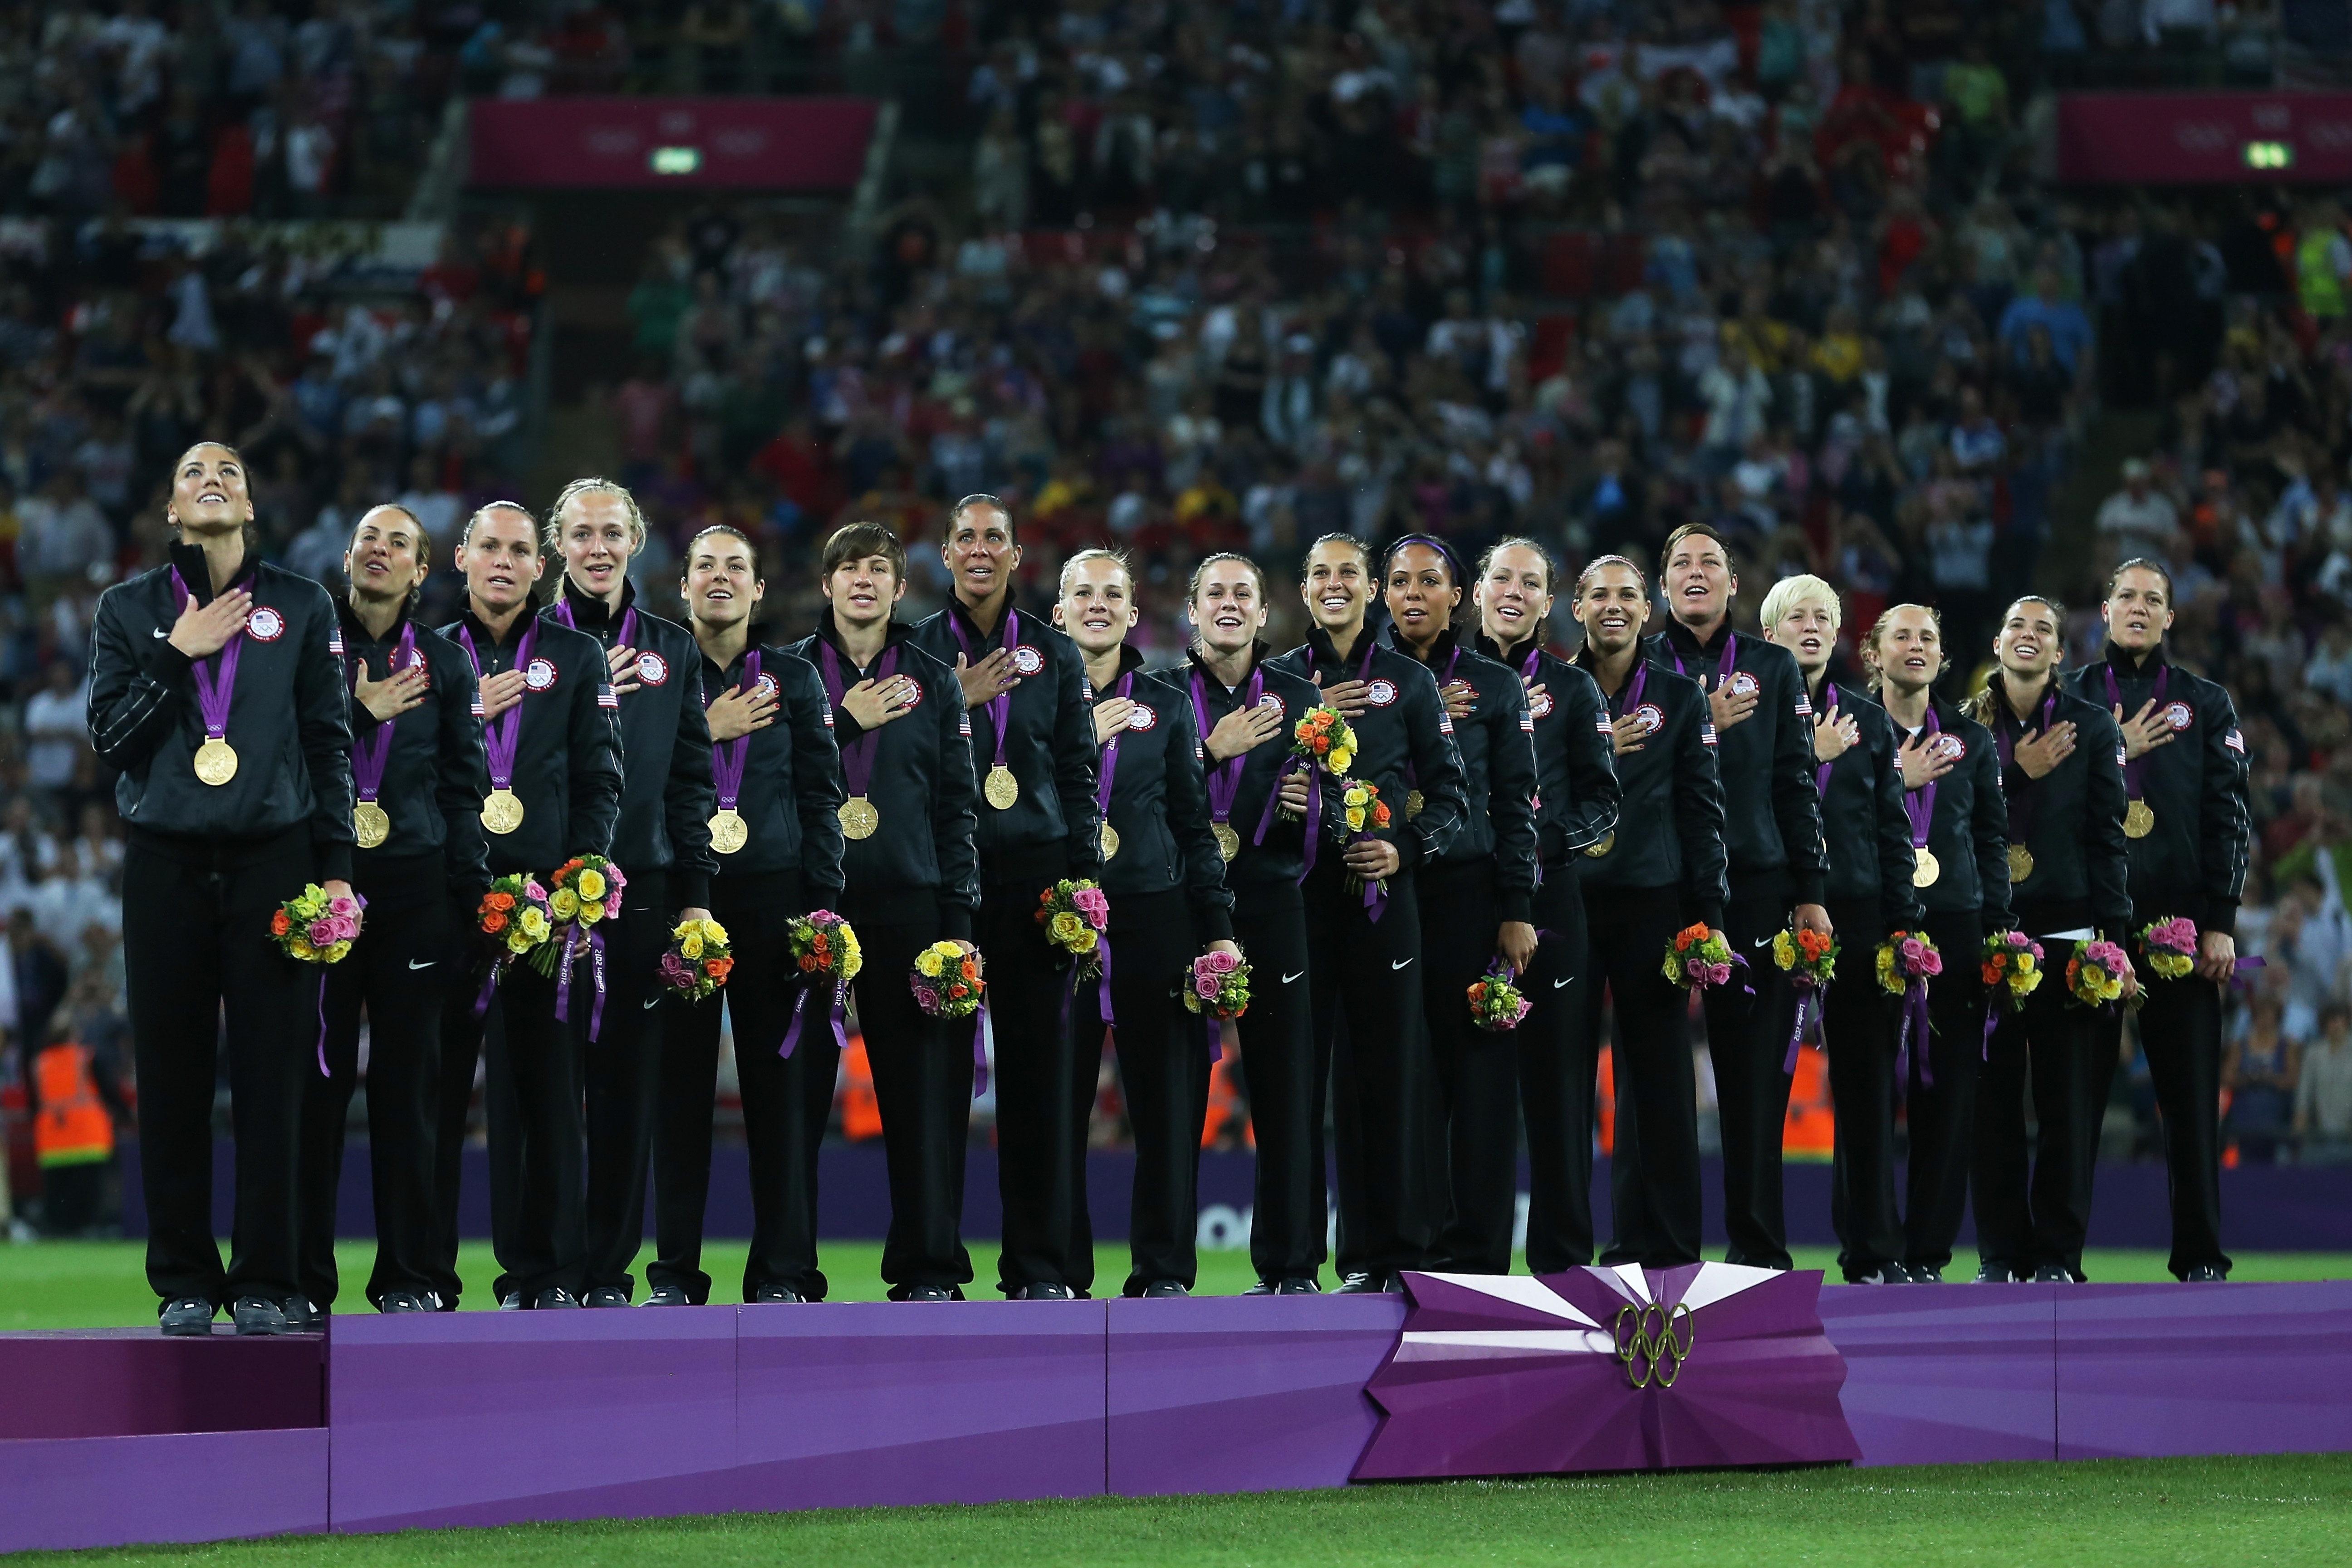 LONDON, ENGLAND - AUGUST 09: The United States women's soccer team listens to the national anthem with the the gold medal after defeating Japan by a score of 2-1 to win the Women's Football gold medal match on Day 13 of the London 2012 Olympic Games at Wembley Stadium on August 9, 2012 in London, England. (Photo by Julian Finney/Getty Images)